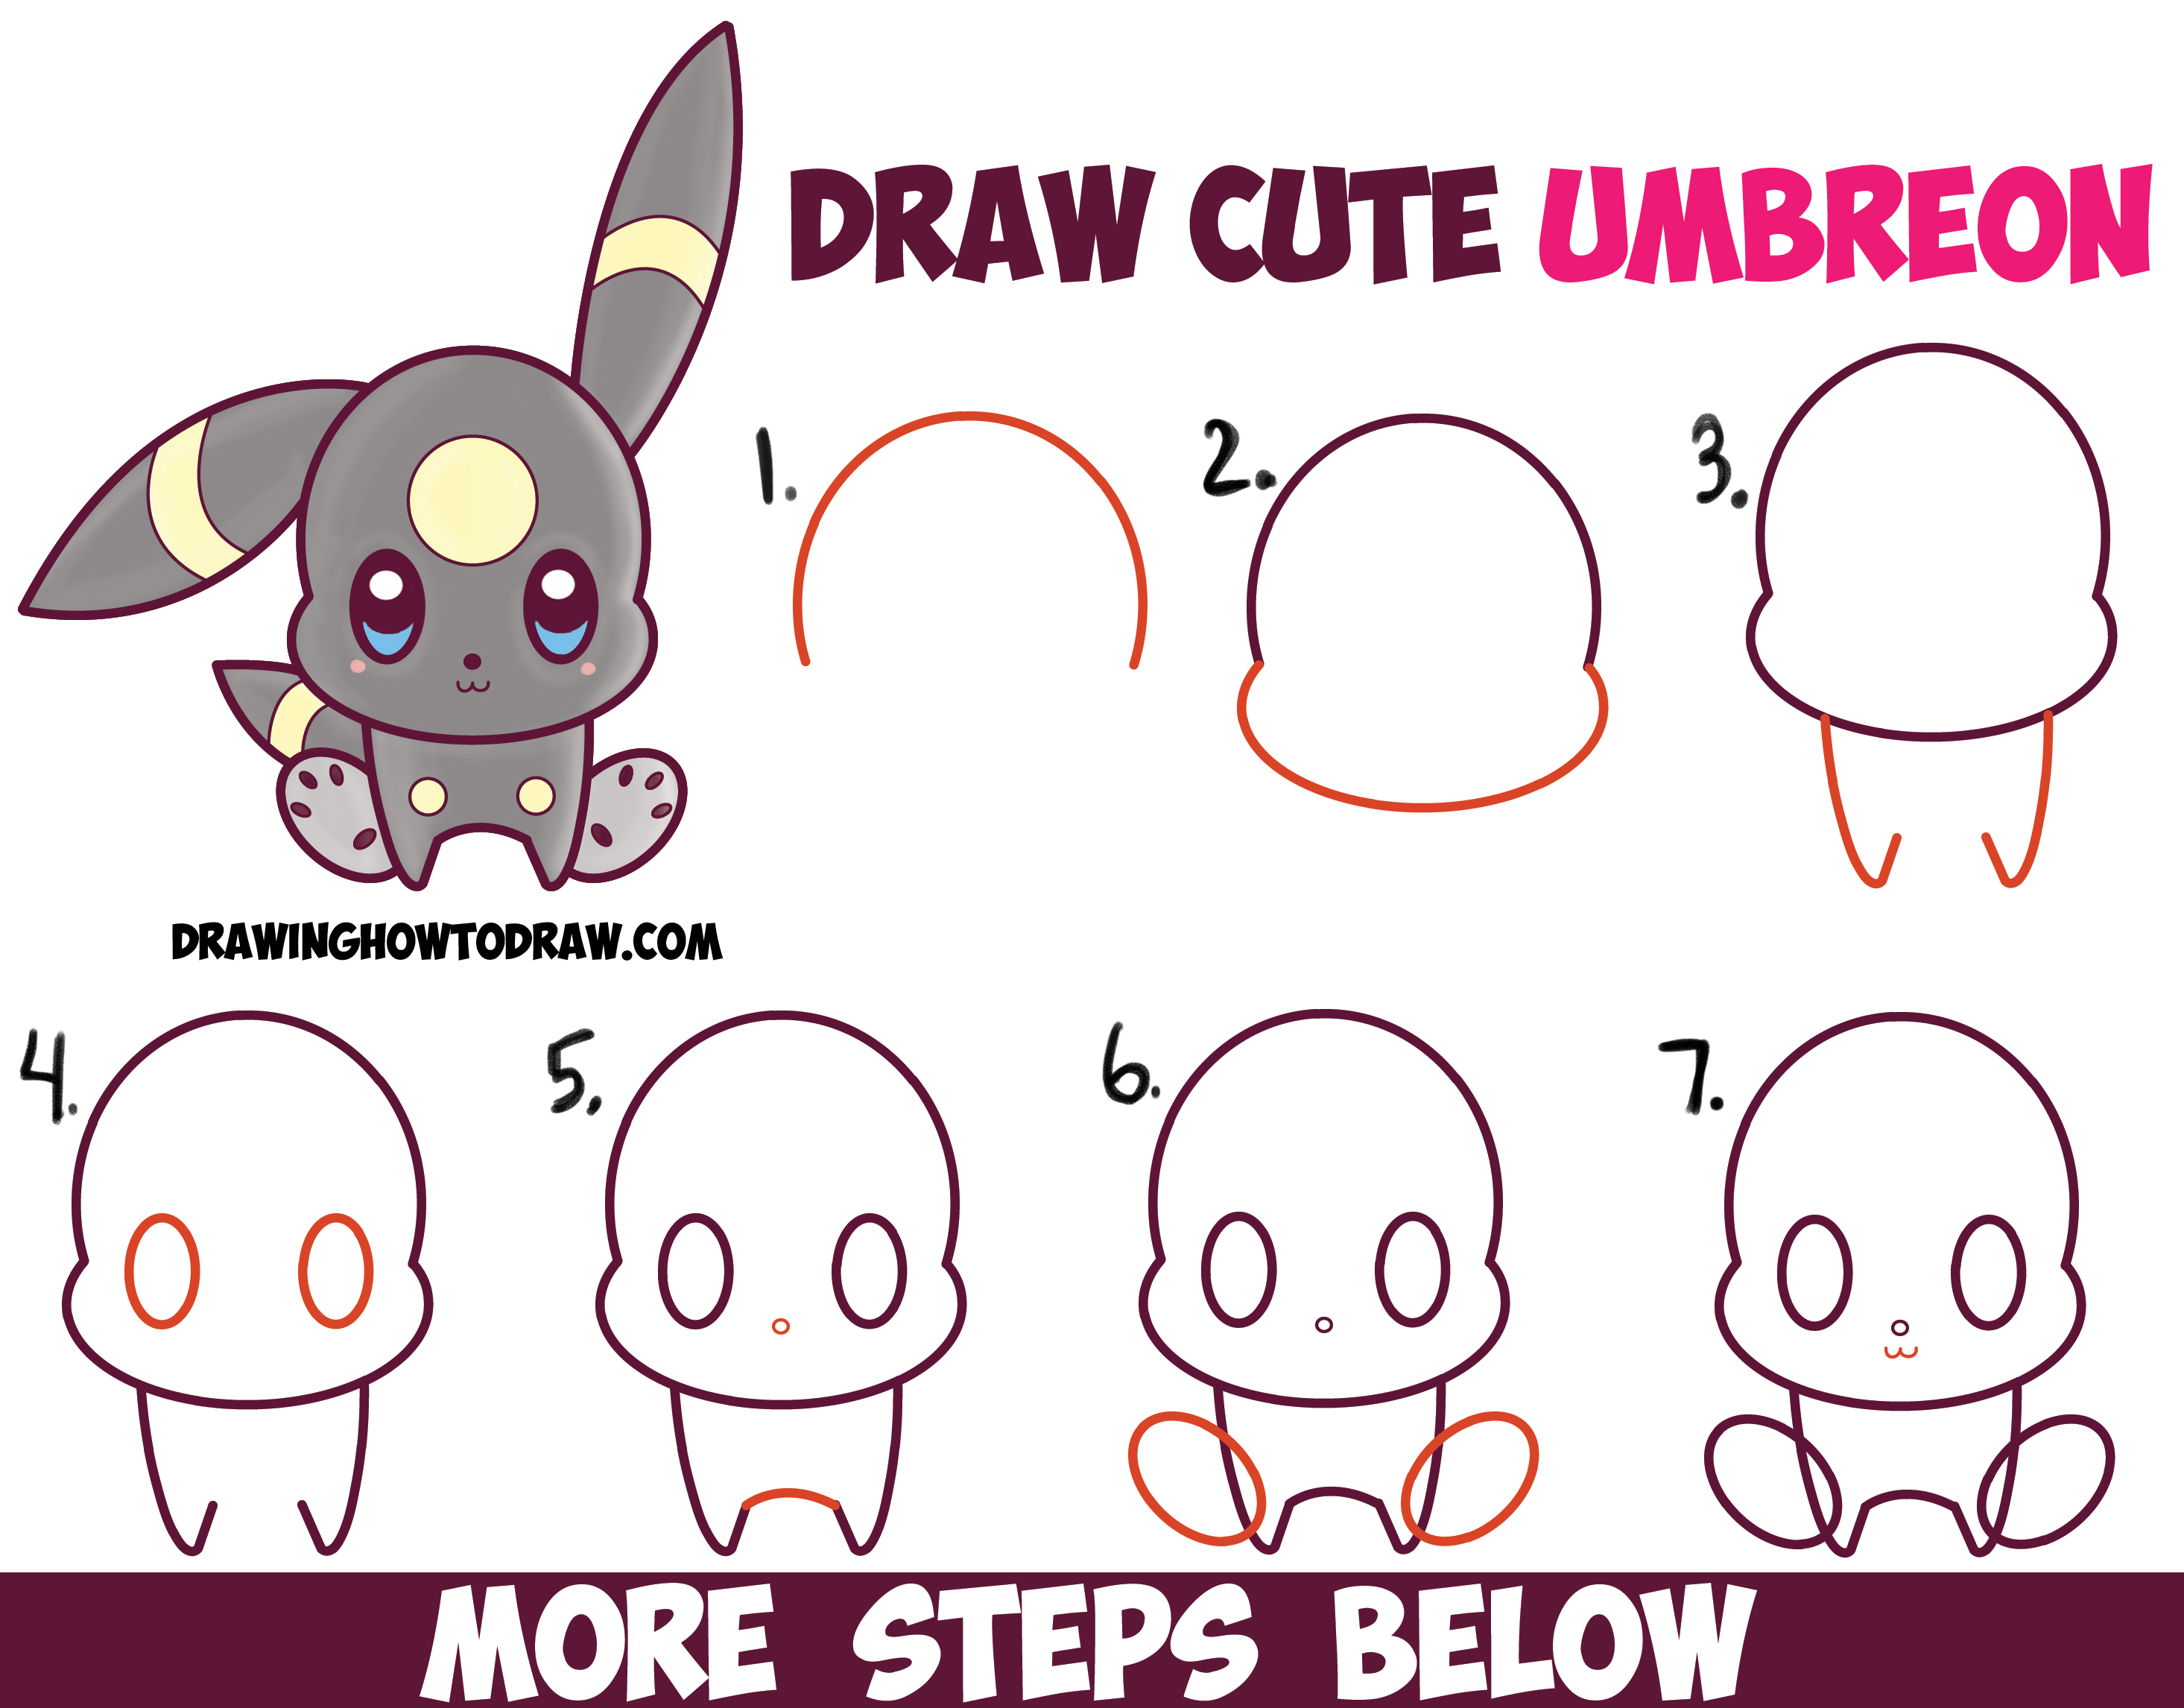 How To Draw Cute Kawaii Chibi Umbreon From Pokemon Easy Step By Step